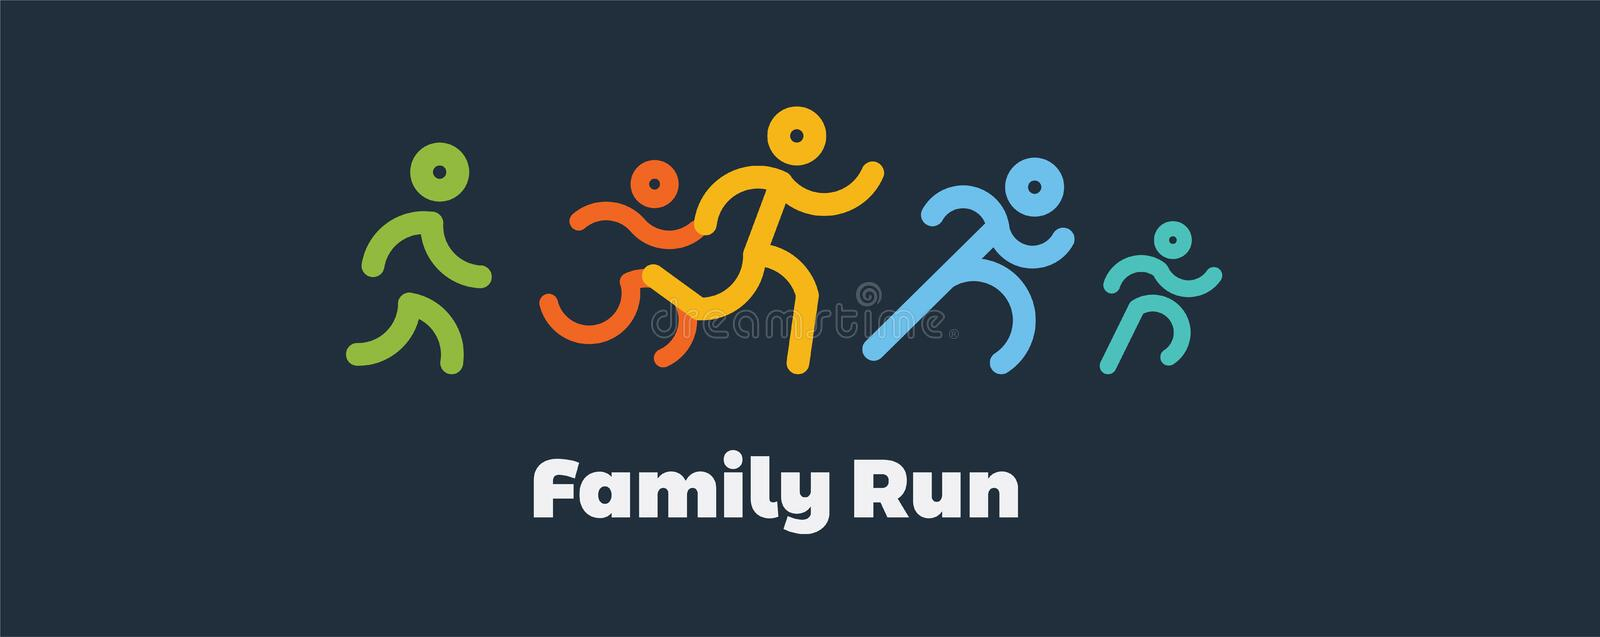 Course de famille Coureurs colorés logo pour la concurrence courante Illustration de vecteur illustration libre de droits